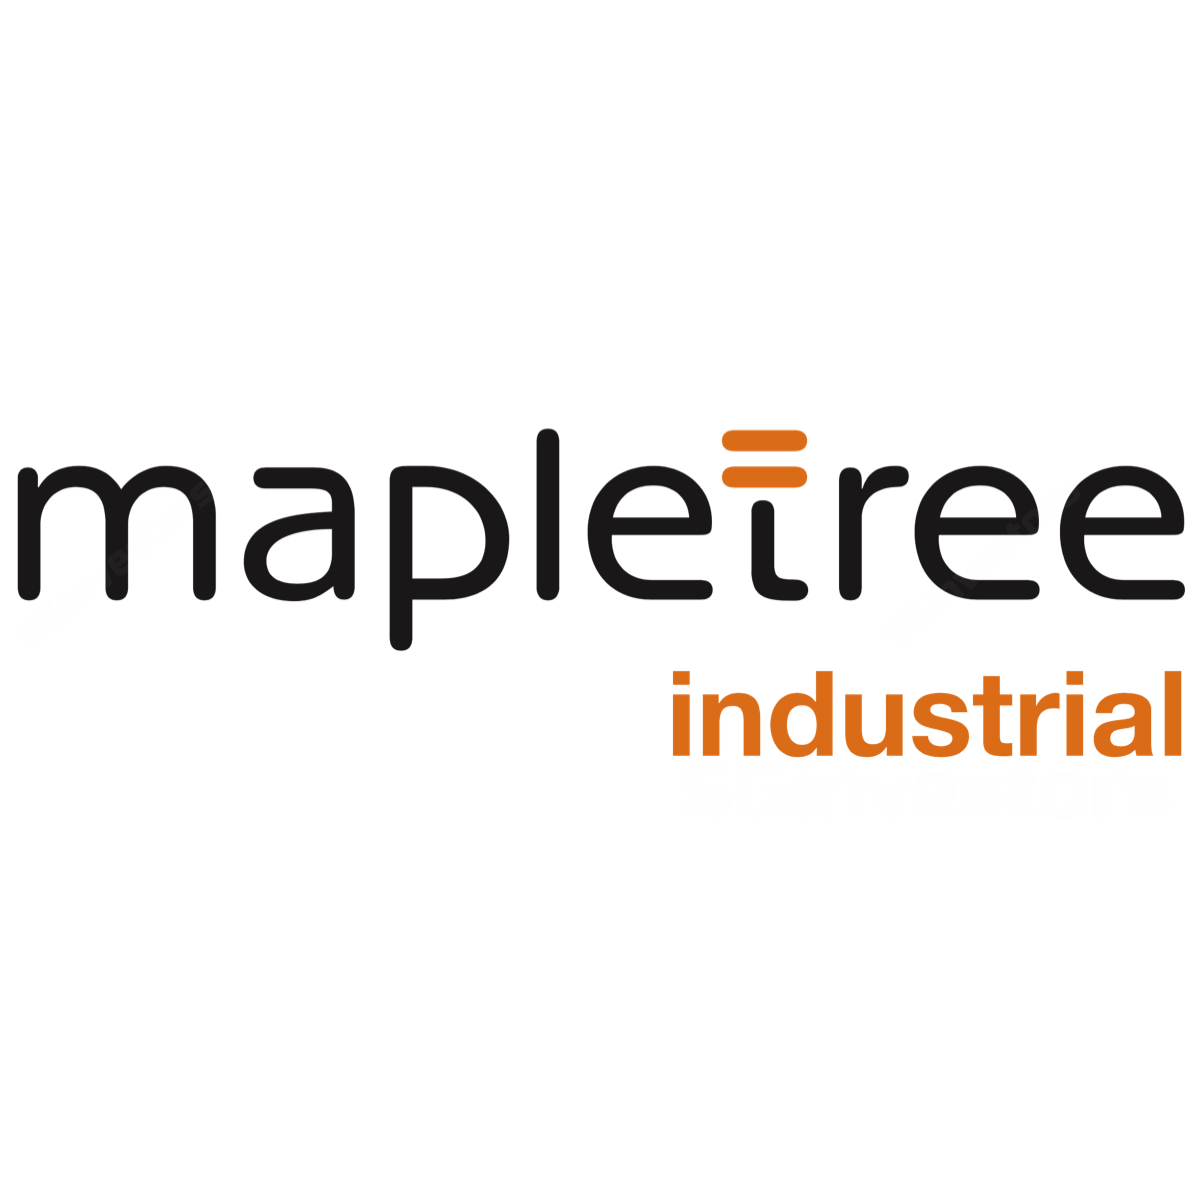 Mapletree Industrial Trust - DBS Vickers 2017-11-08: Powerful Combination Of Certainty And Growth